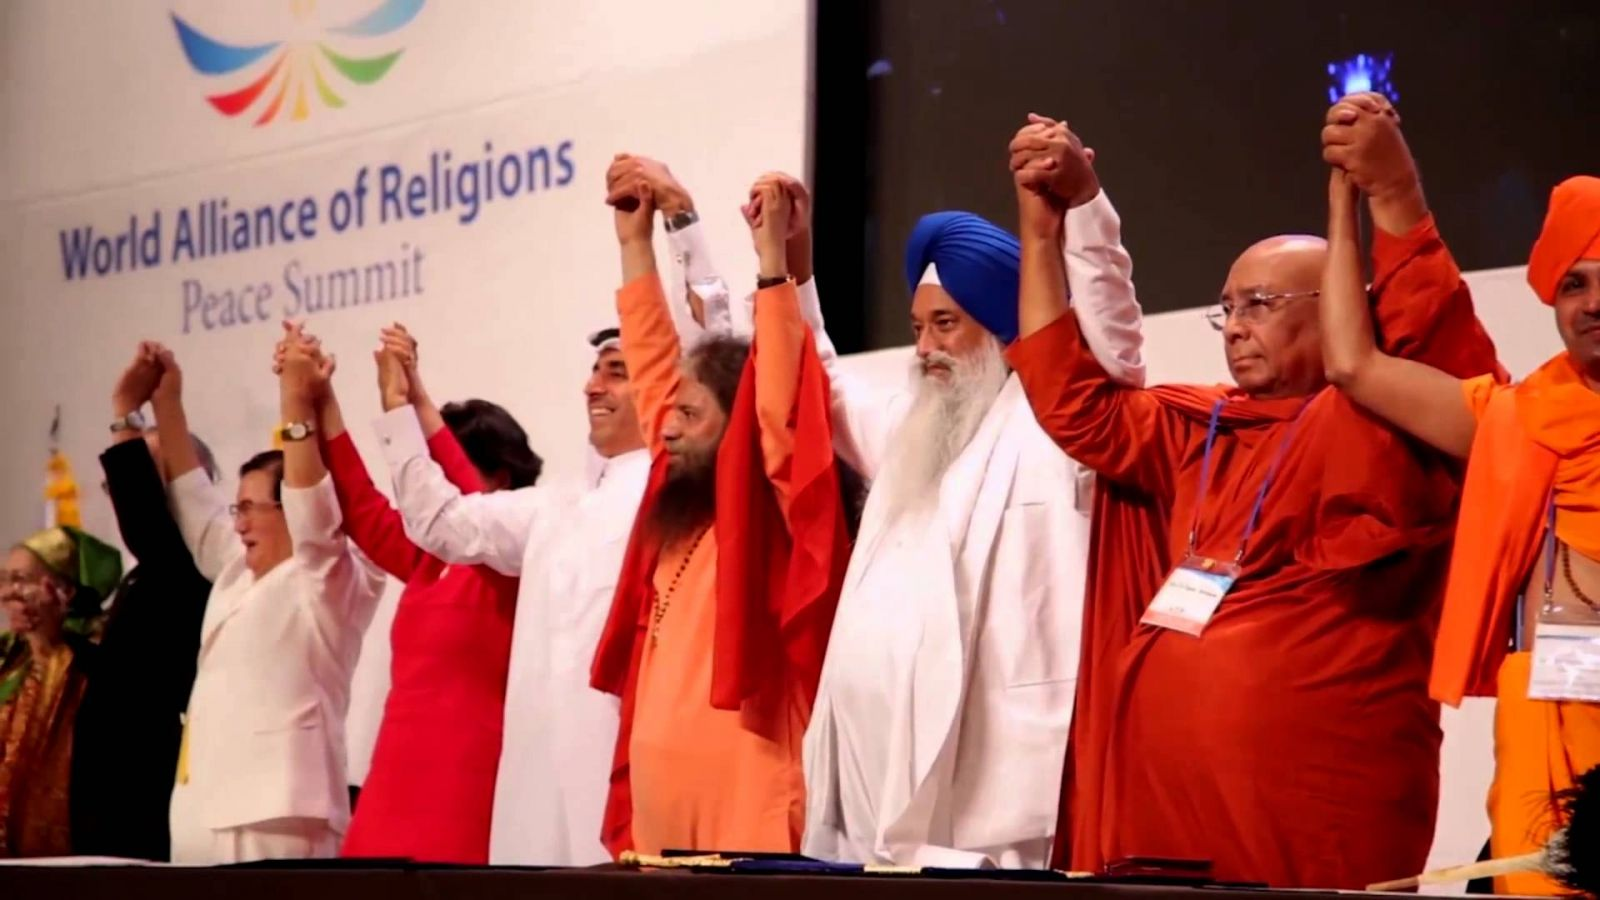 Religioni per la Pace - World Alliance of Religions for Peace Summit